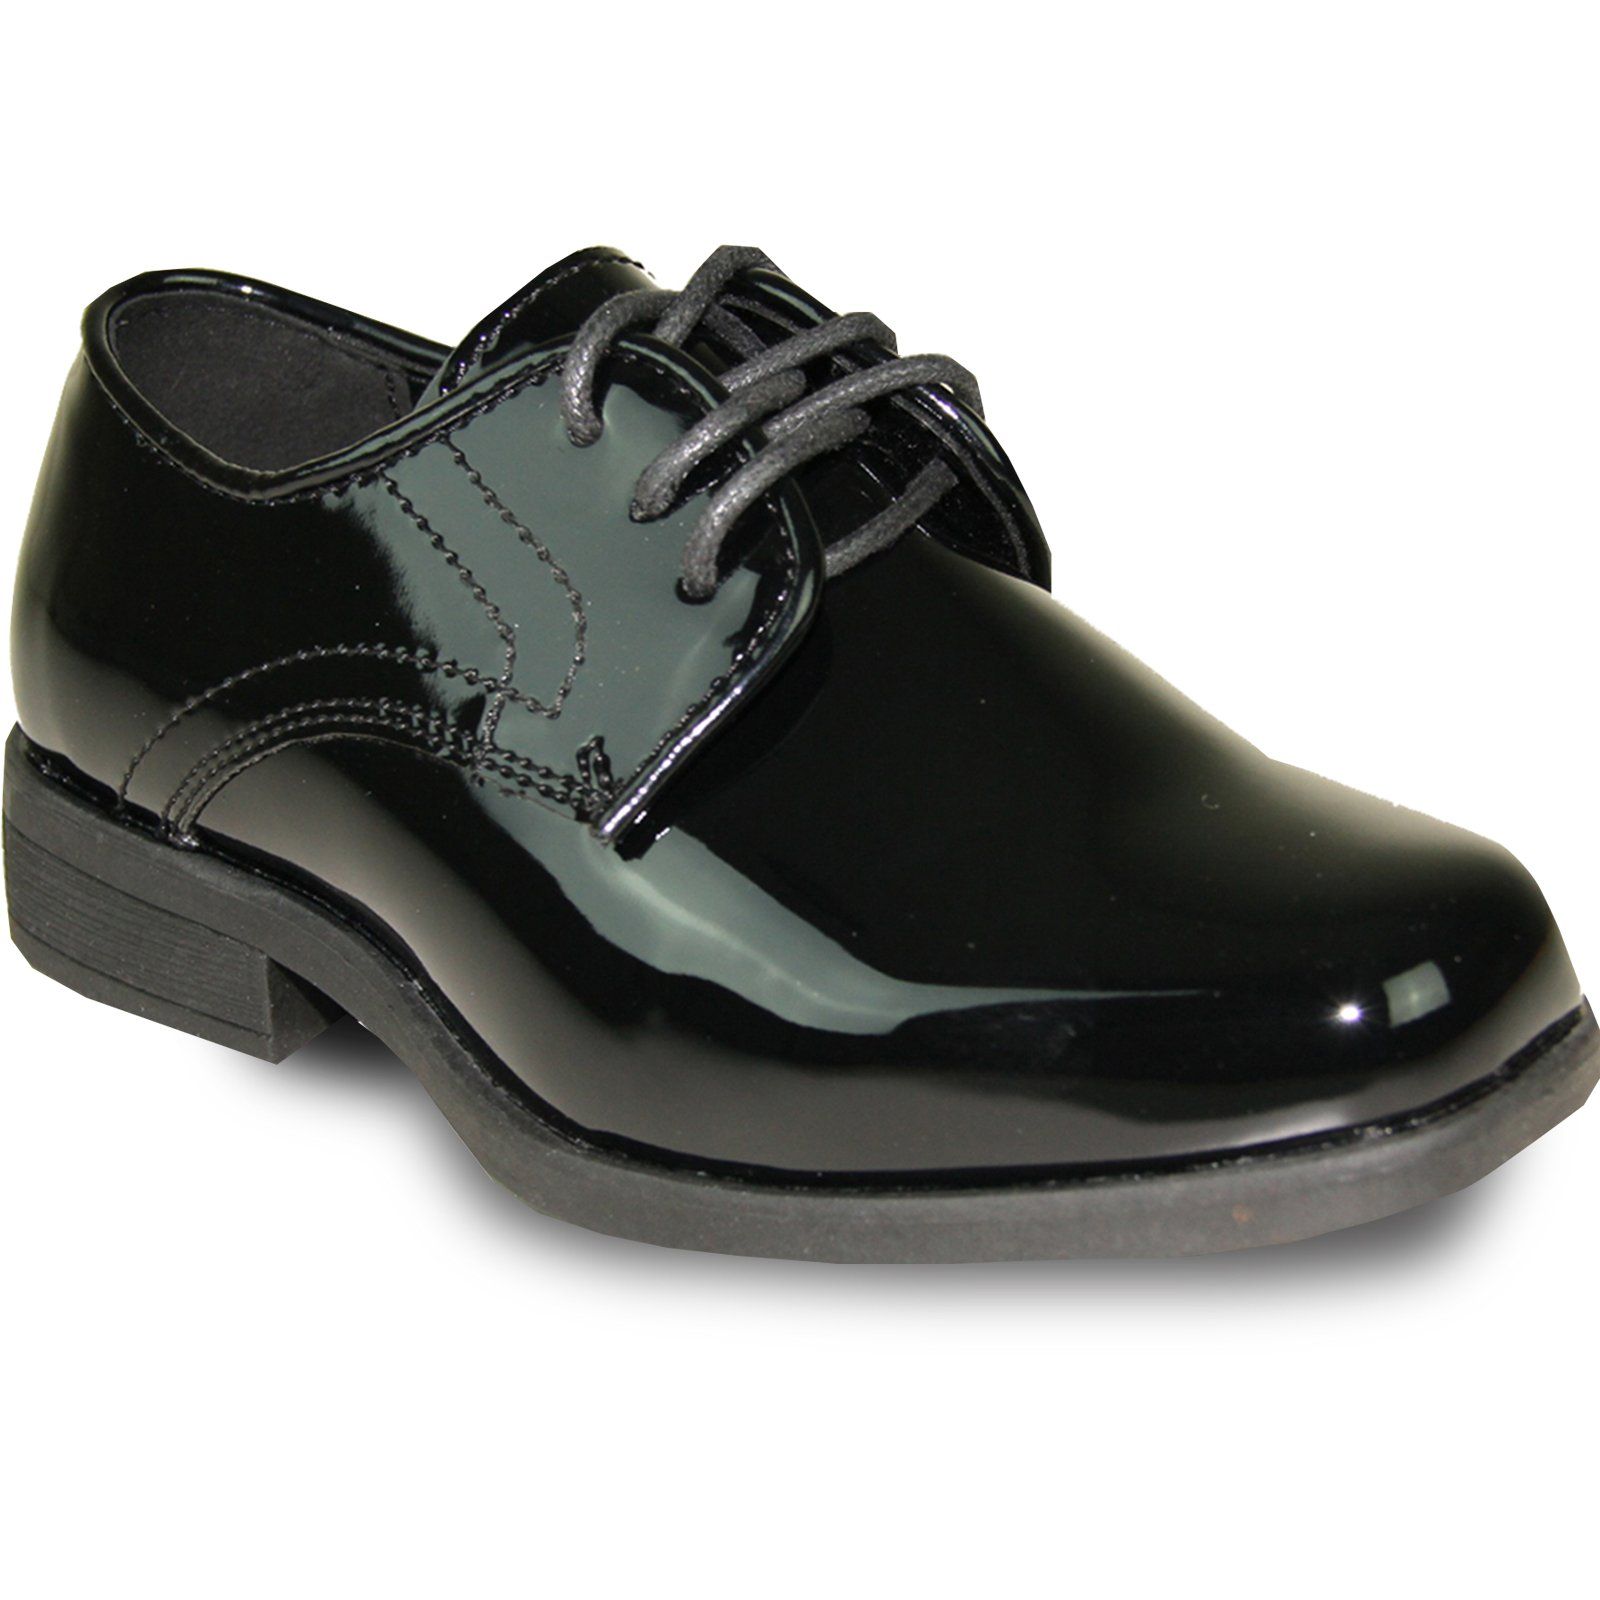 JEAN YVES Boy Dress Shoe JY01KID Classic Tuxedo for Wedding, Prom and Formal Event Black Patent 8K